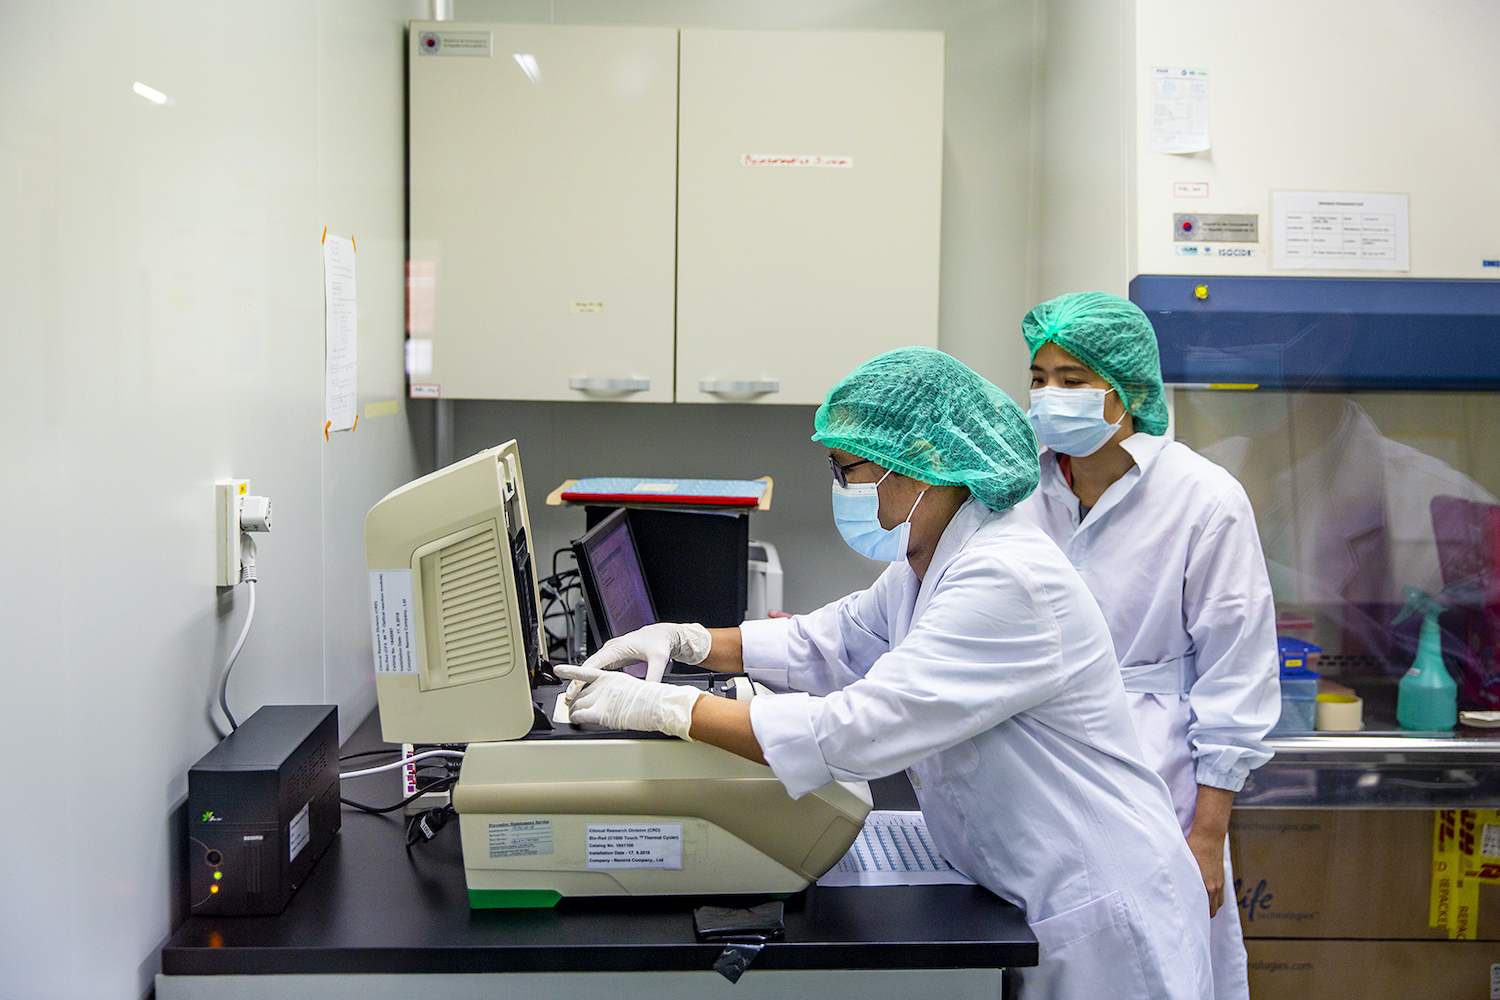 Lab technicians test COVID-19 samples at the Department of Medical Research's laboratory in Yangon on May 21, 2020. The country's COVID-19 response, including testing, has ground to a halt in the wakr of the February 1 coup. (Frontier)